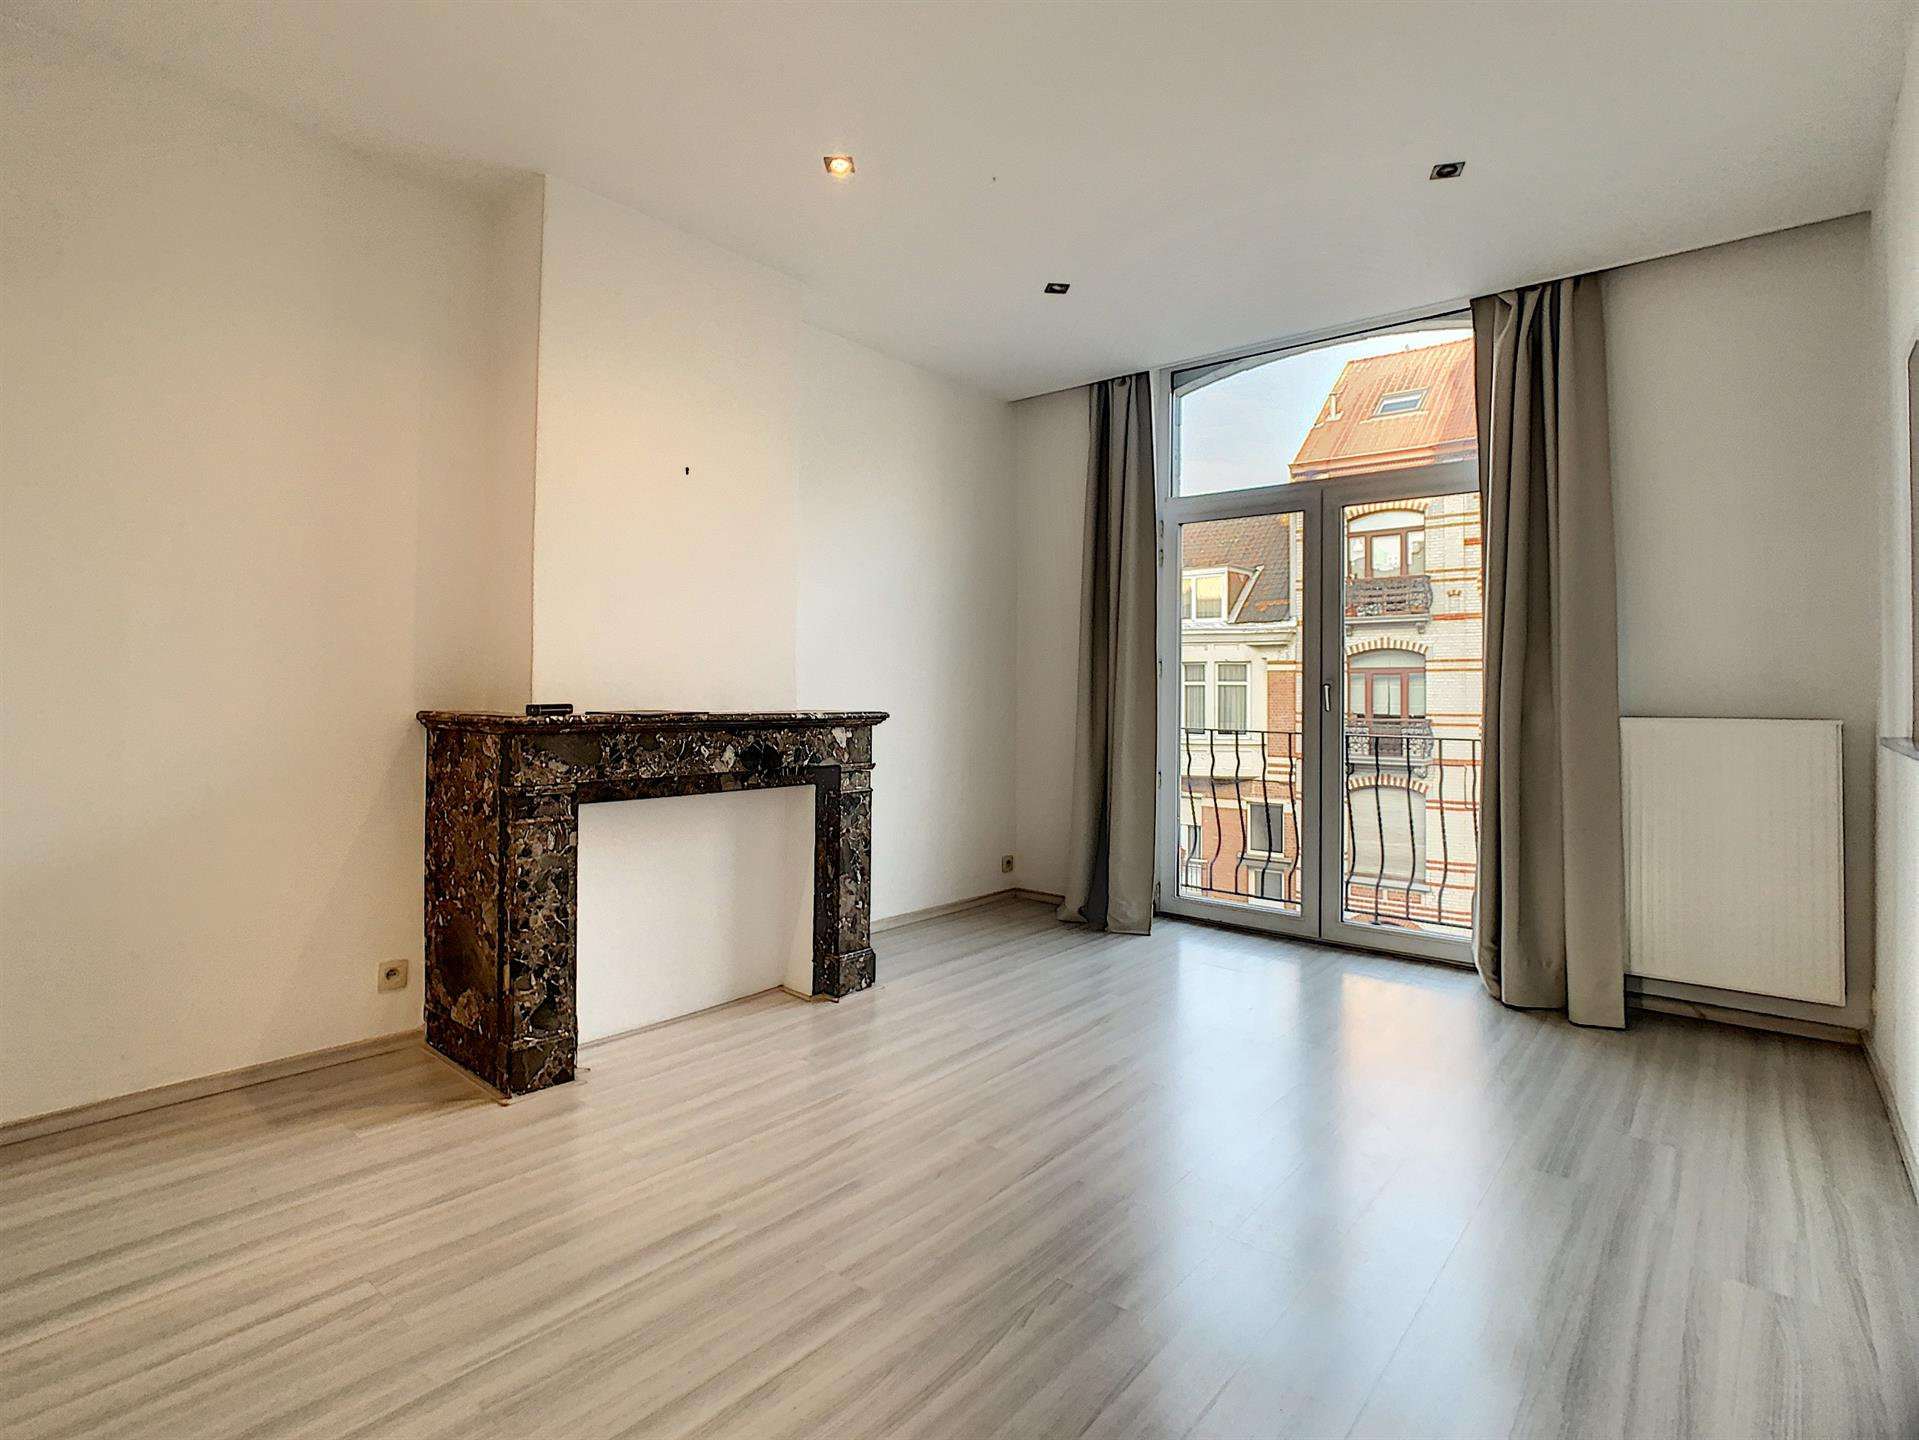 Appartement - Forest - #4274397-1